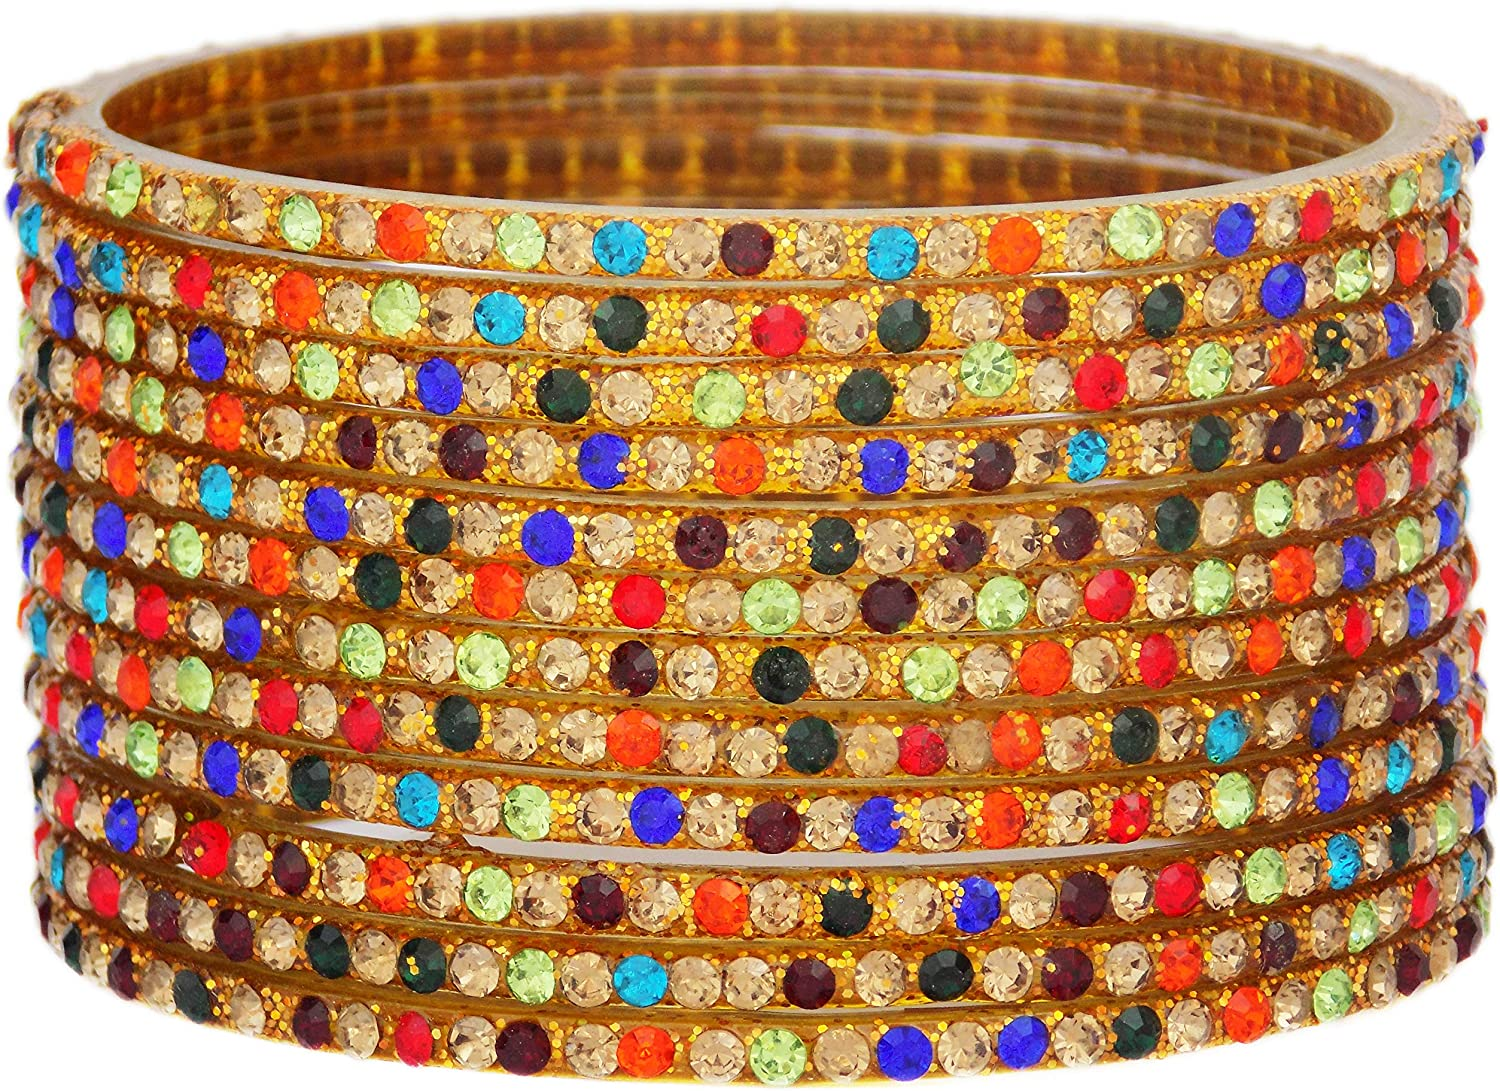 JD'Z COLLECTION Indian Glass Bangles Set Jewelry for Womens & Girls Bollywood Bangles Set Bridal Ethnic Wedding Partywear Costume Match CZ Stone Glass Bangles Set of 12 Multi